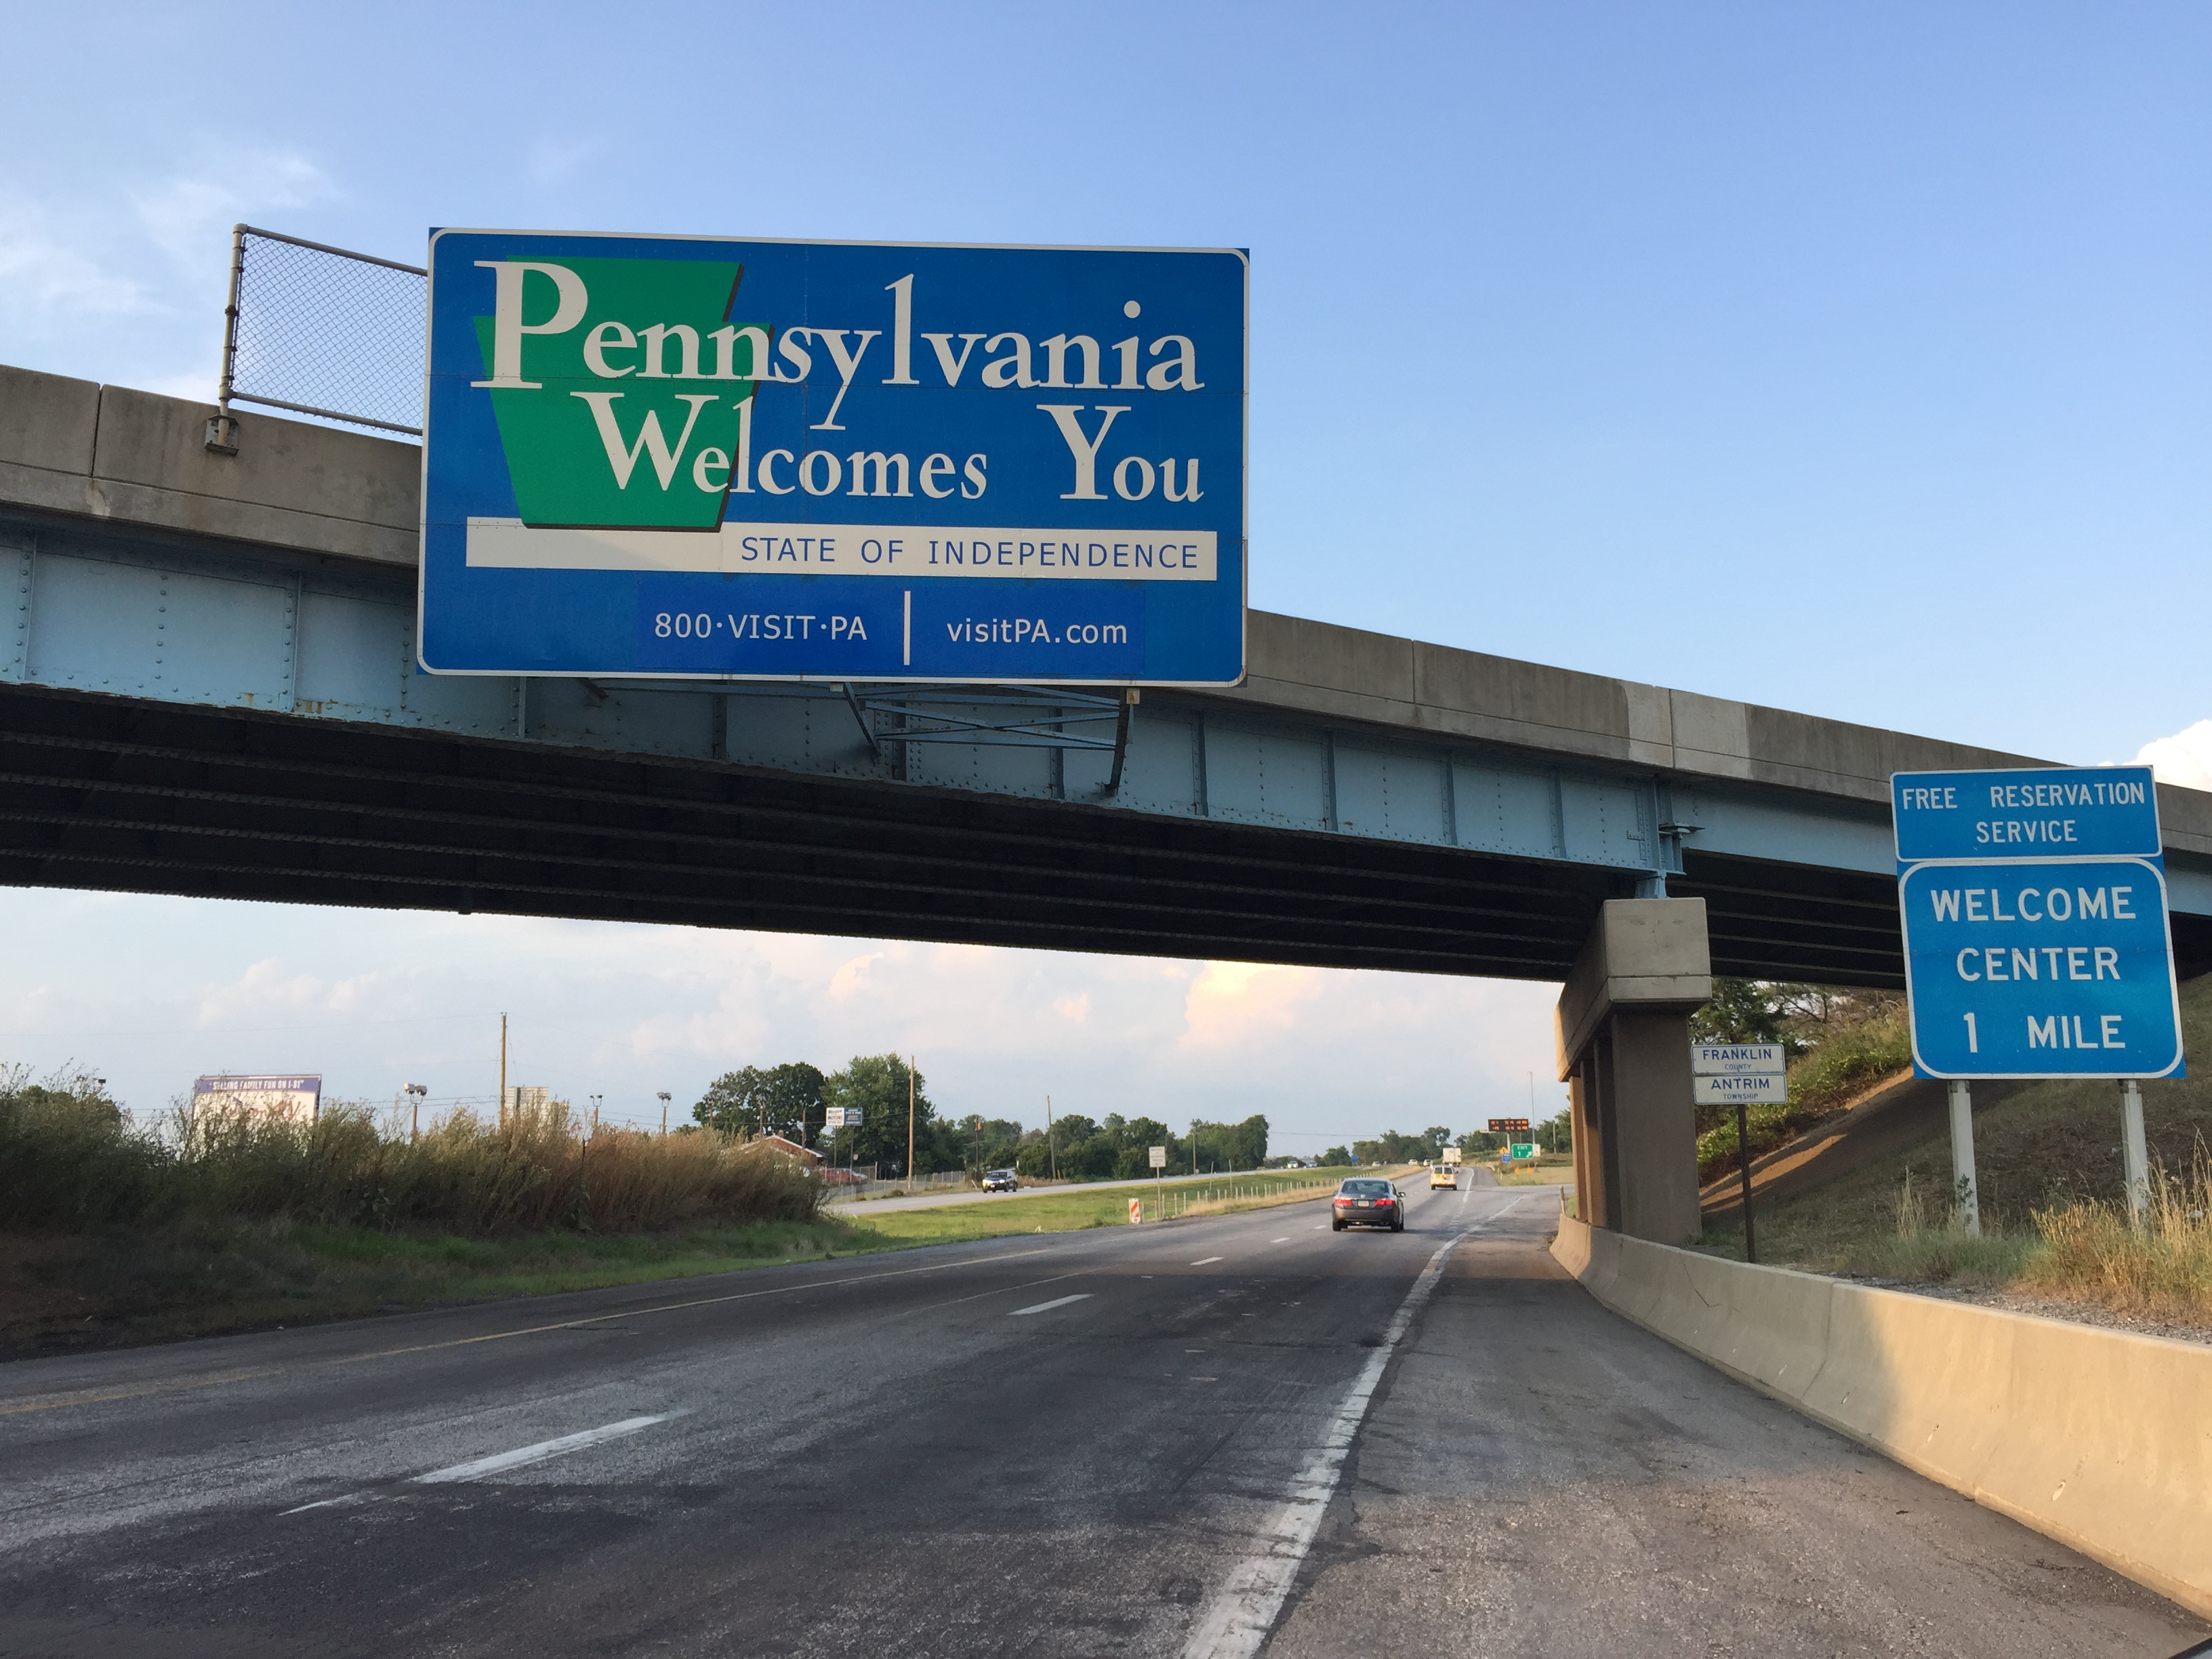 File:2016-07-29 19 24 02 View north along Interstate 81